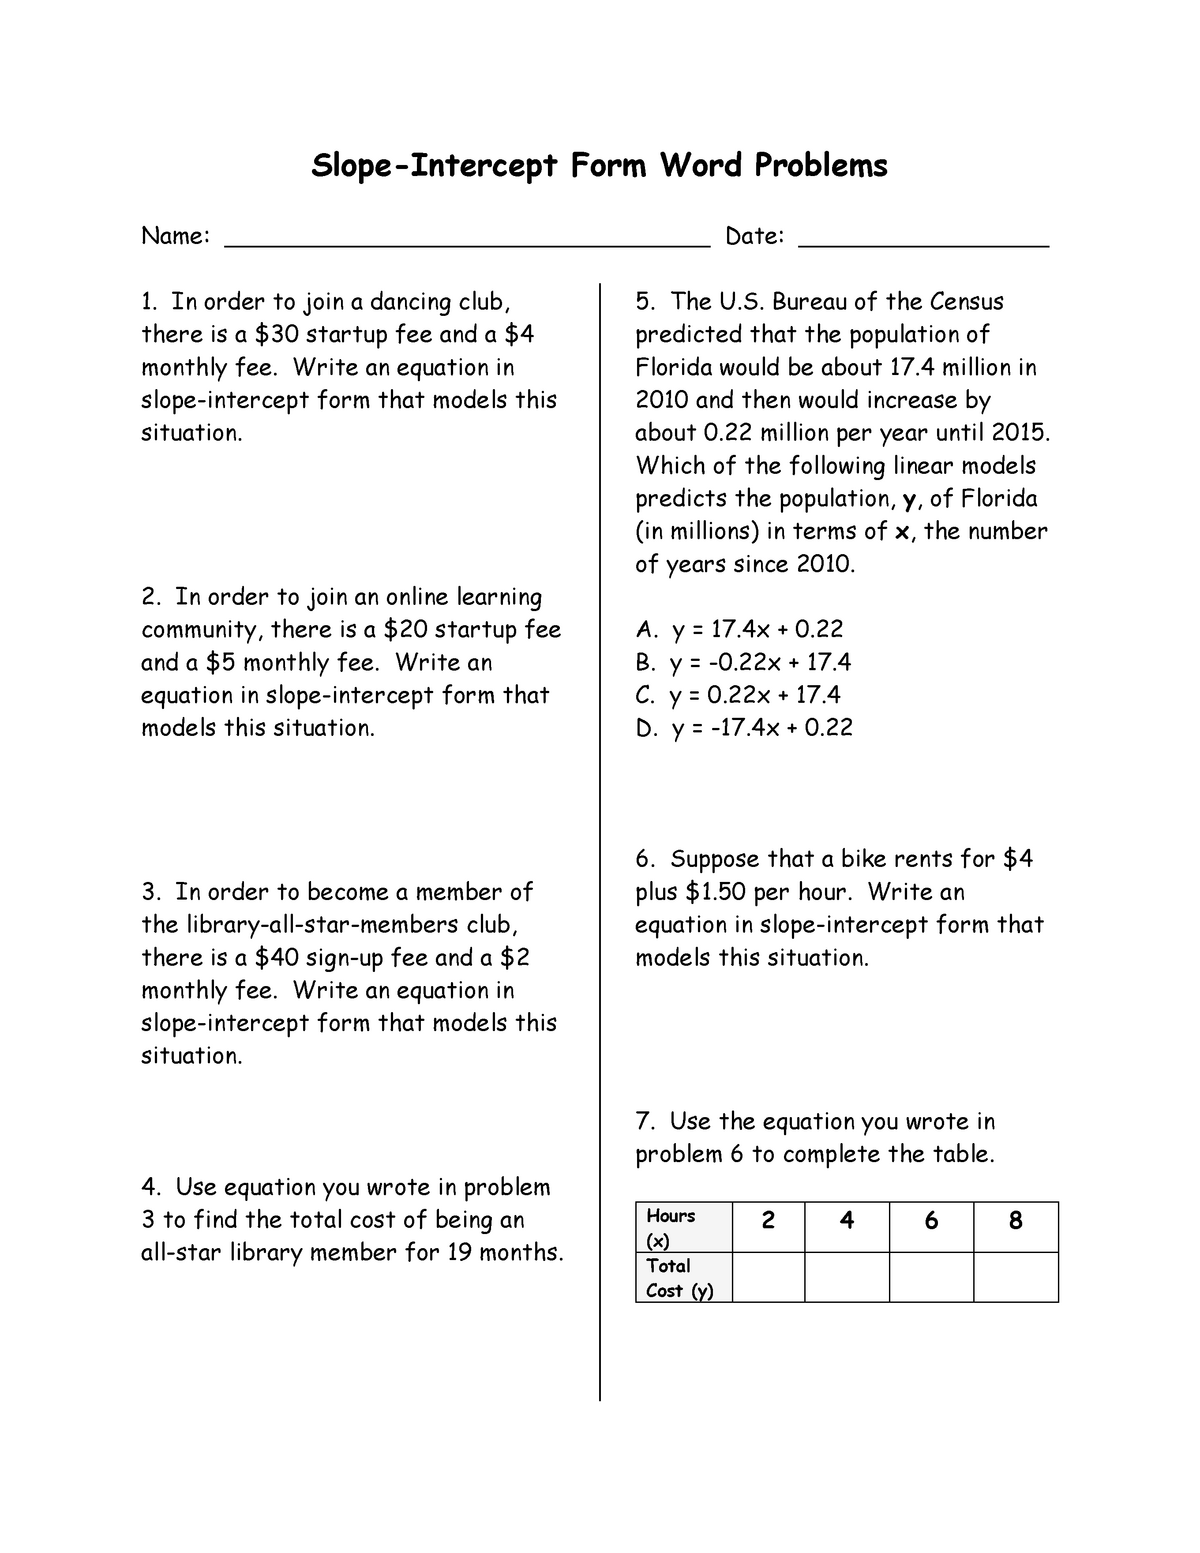 slope intercept form word problems answer key  Slope-Intercept Form Word Problems wkst - Basic Mathematics ...